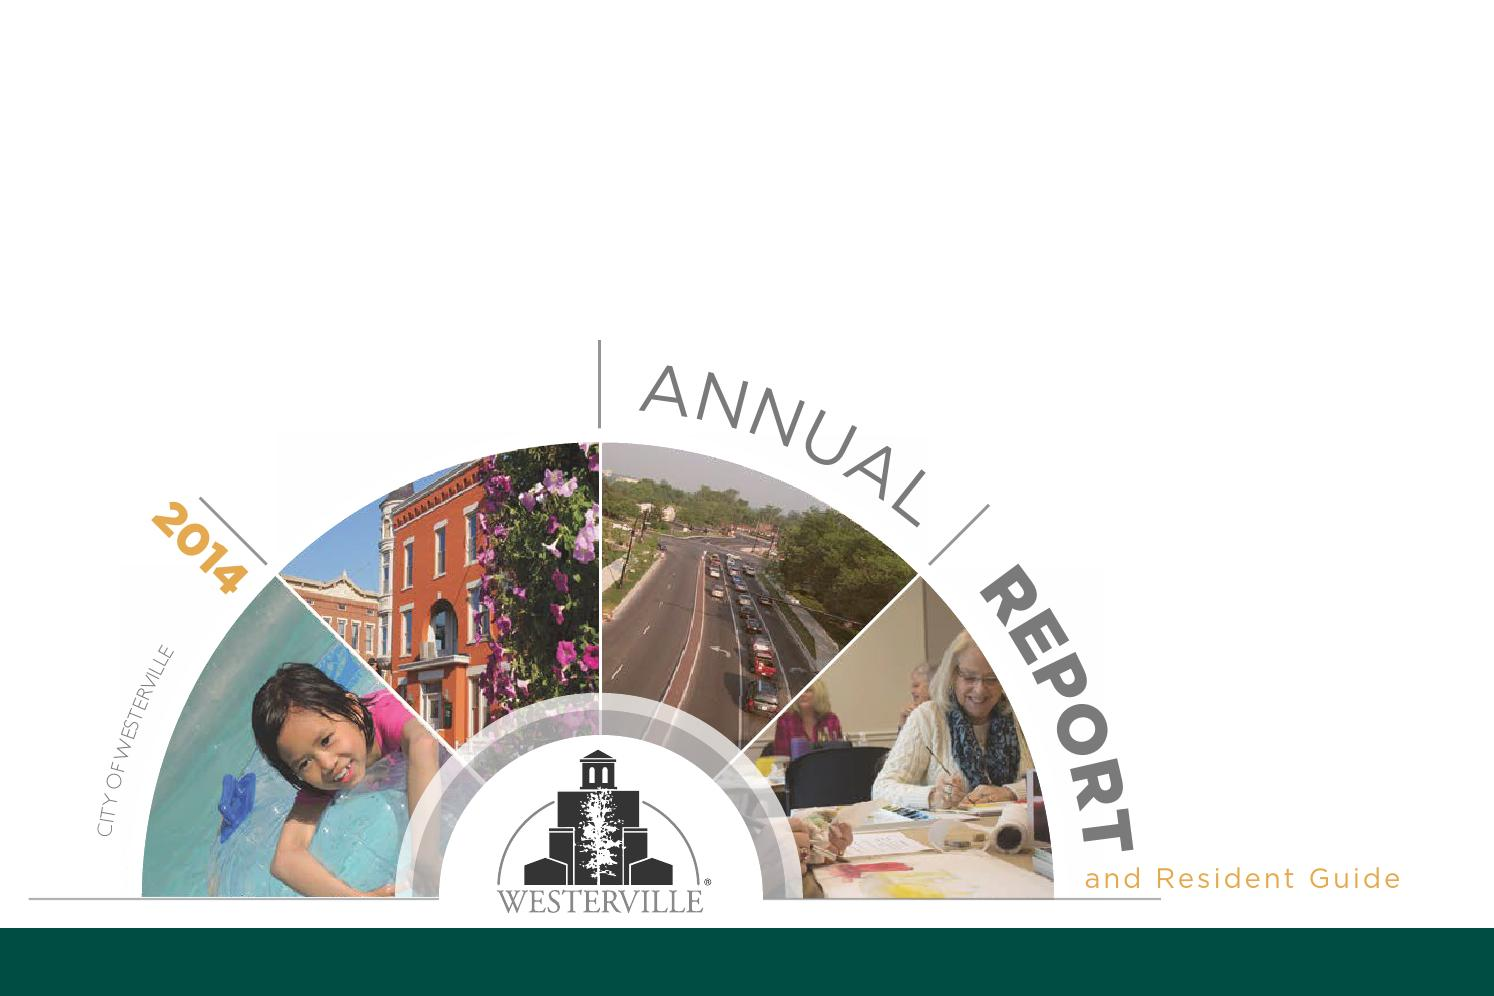 city of westerville 2014 annual report and resident guide by city city of westerville 2014 annual report and resident guide by city of westerville issuu